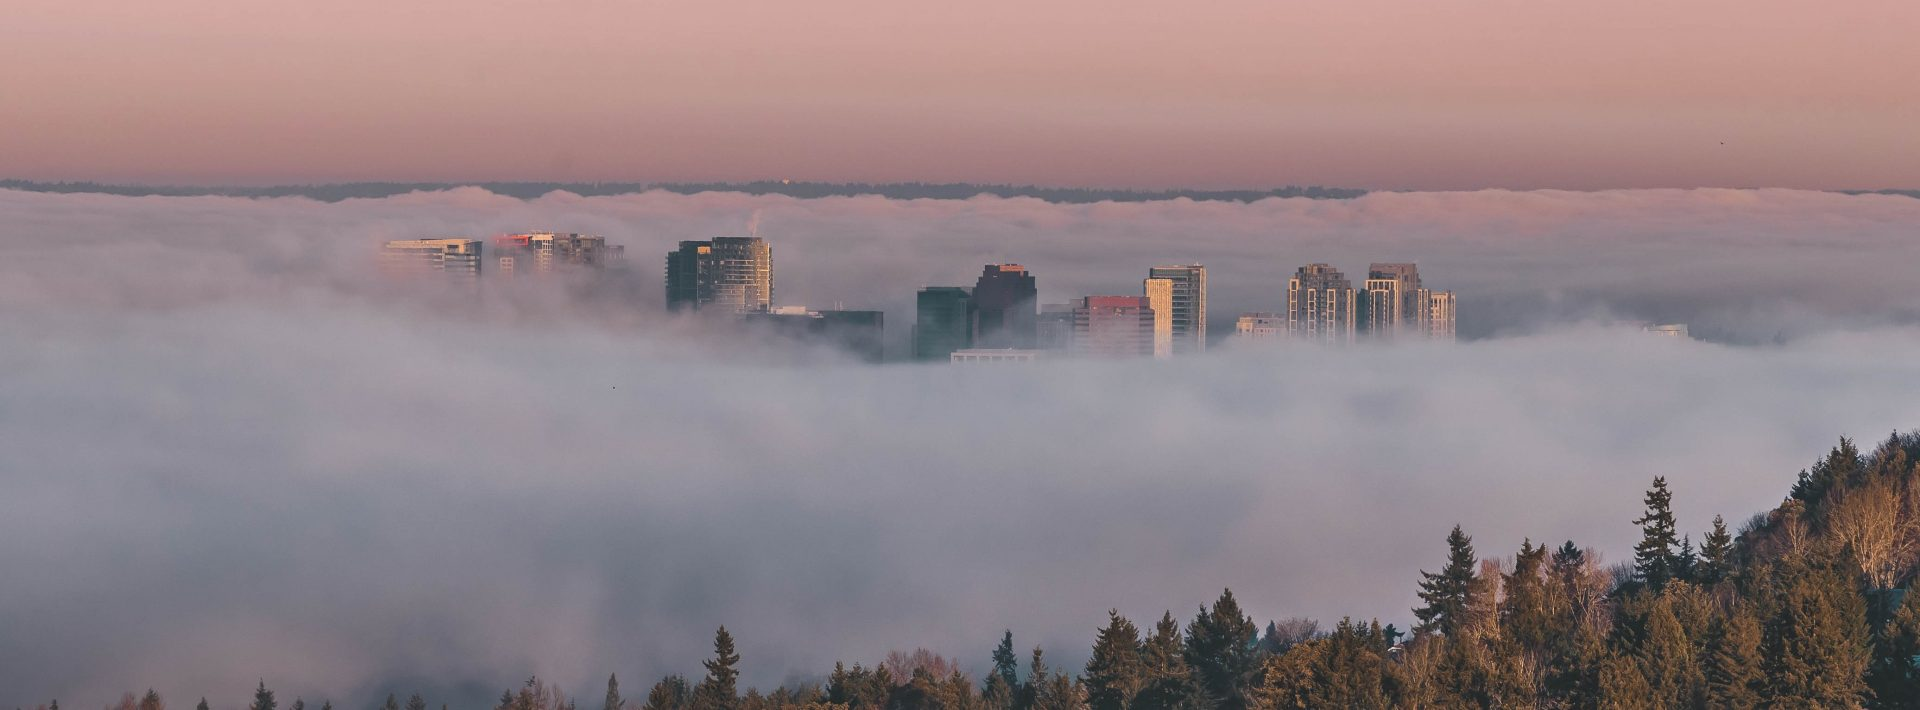 Bellevue-Cloudcover-1